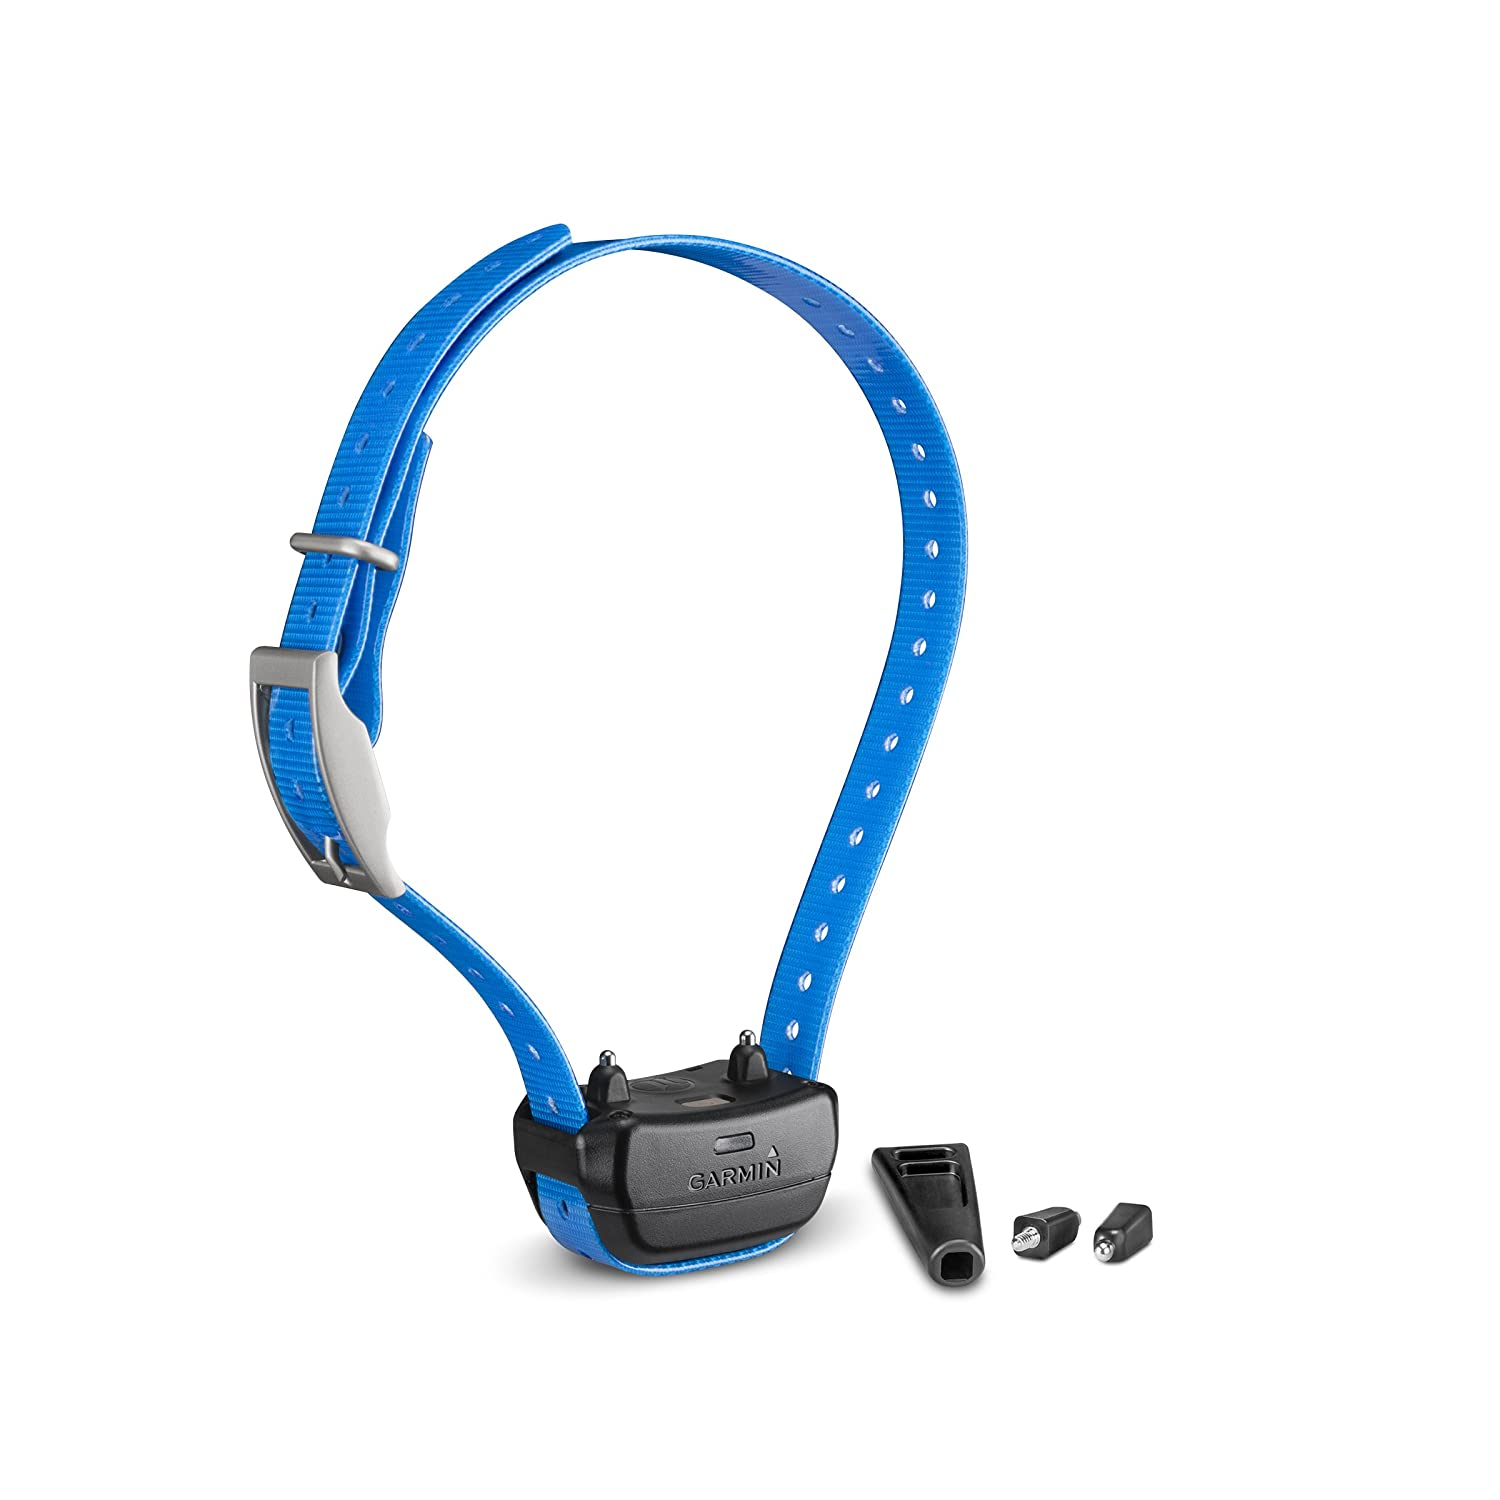 Garmin Delta Sport device only Image 1